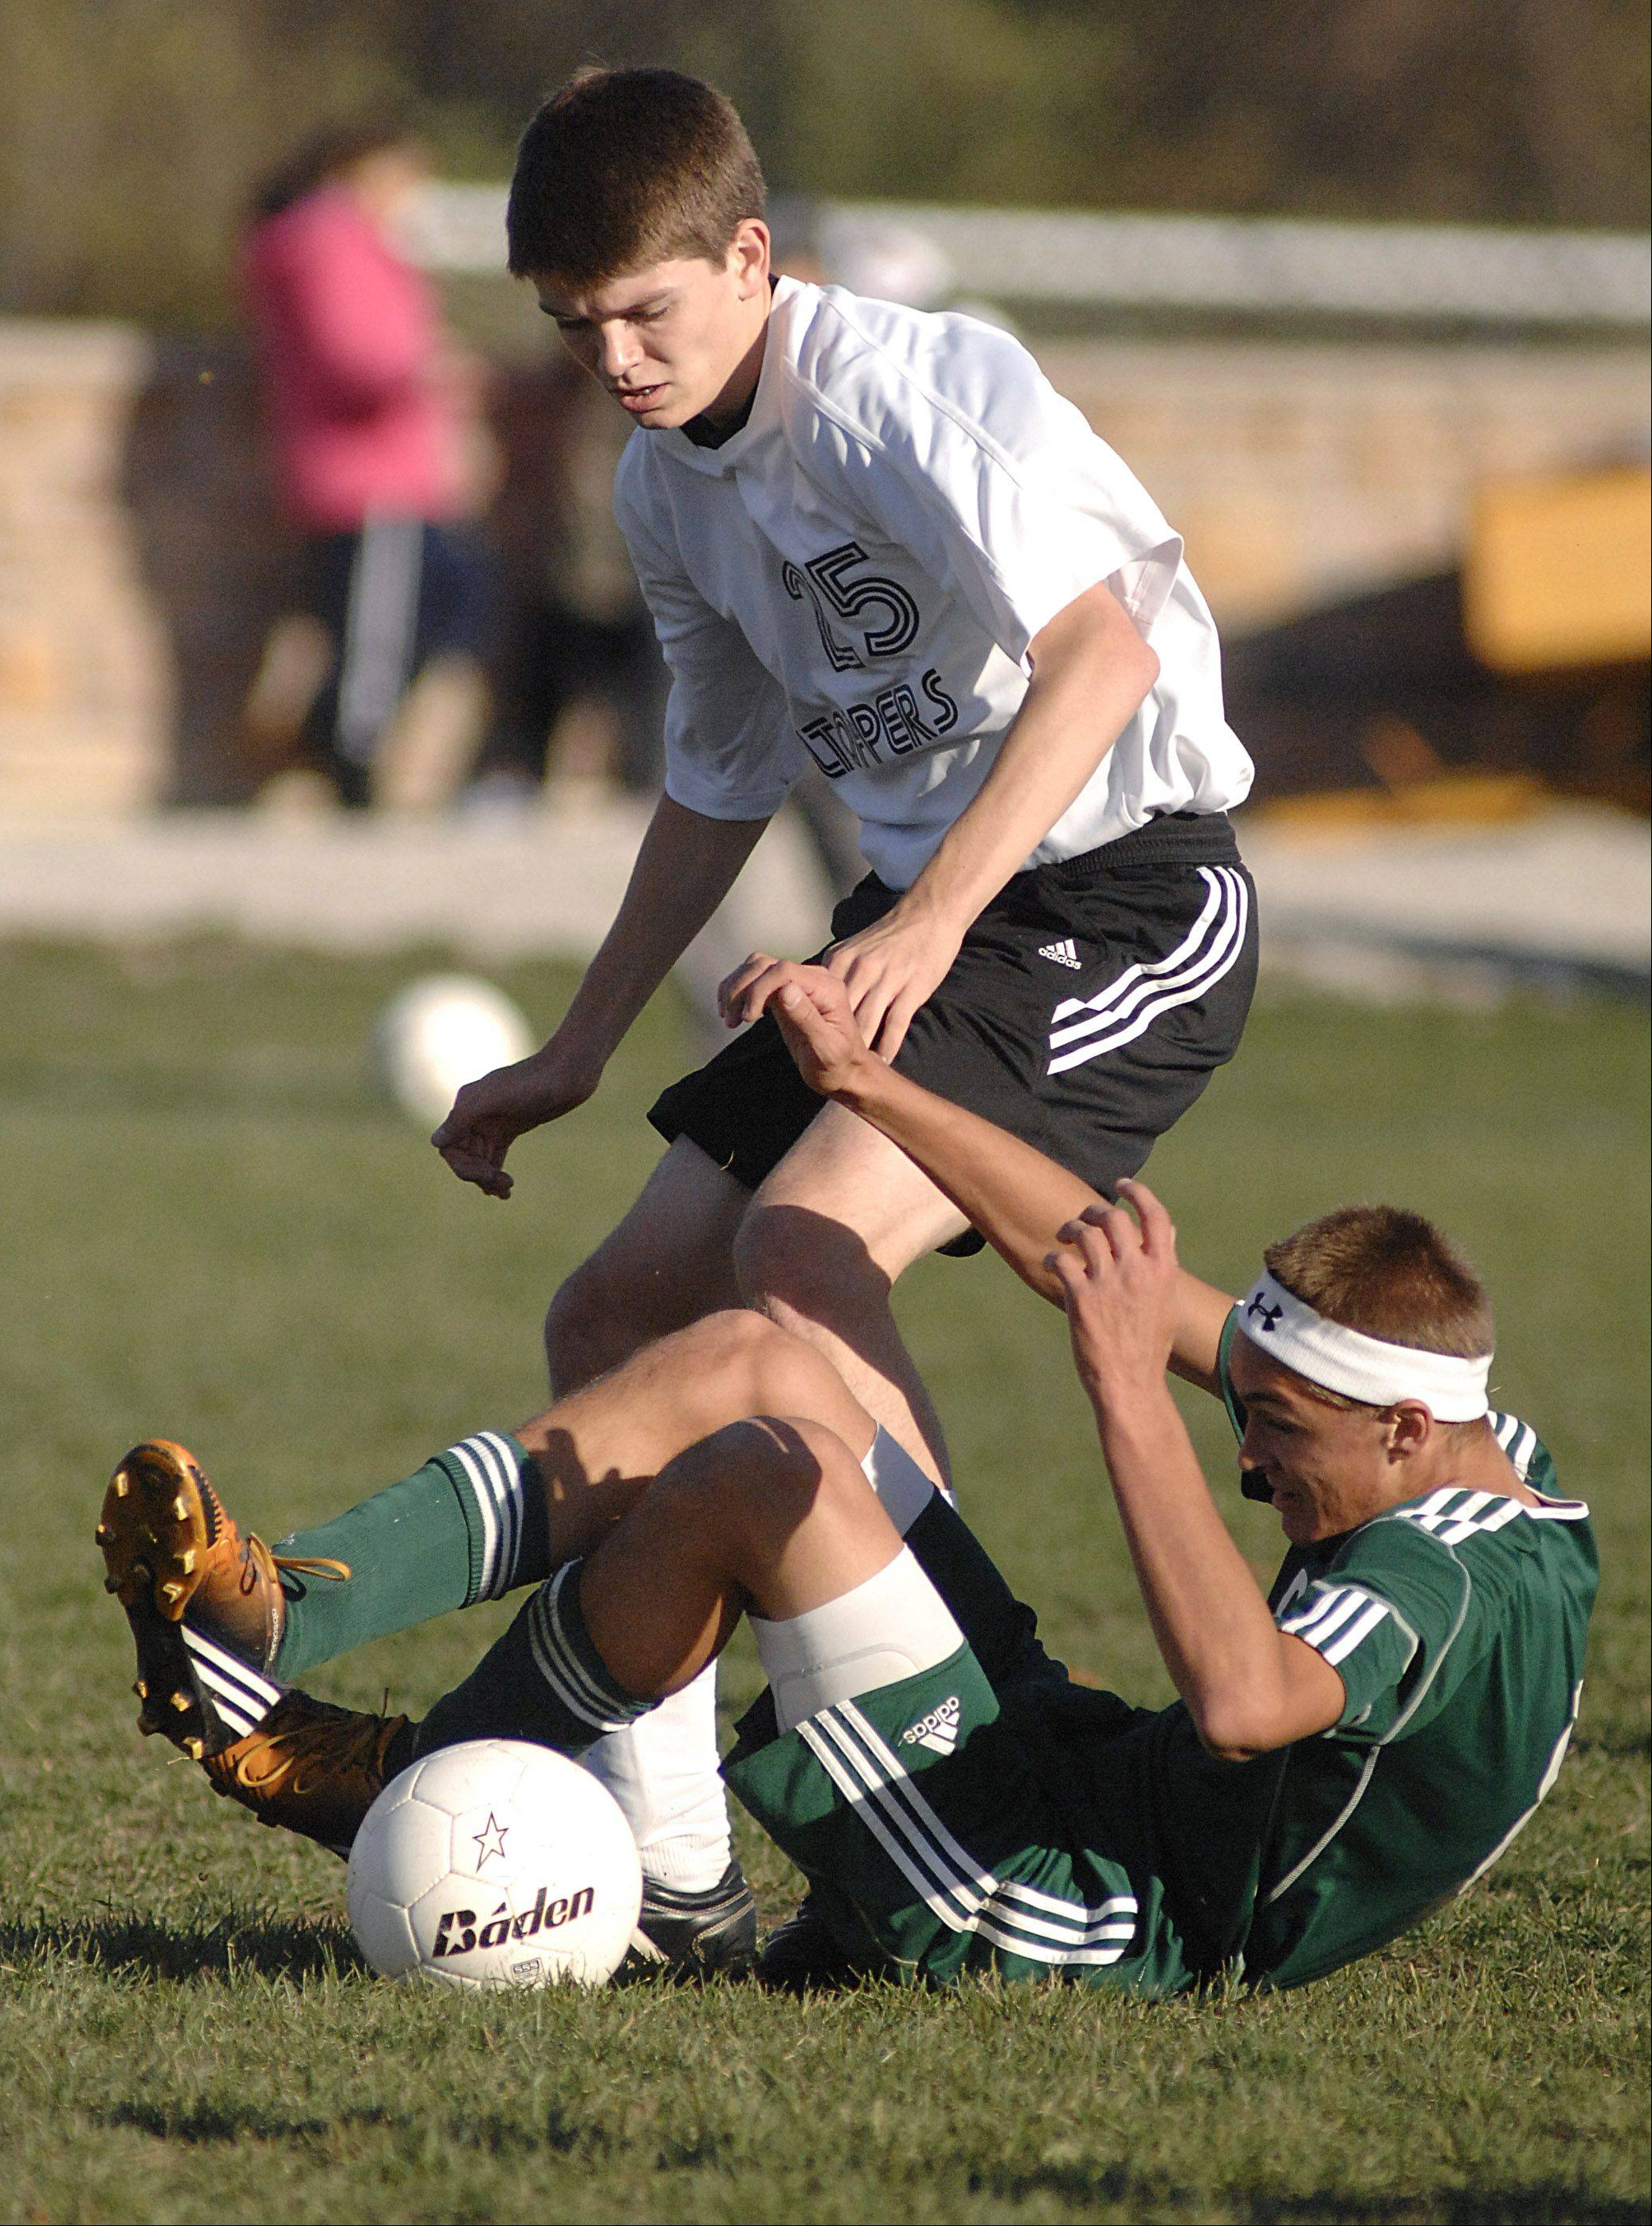 St. Edward's Johnny Shepherd tumbles as he and Elgin Academy's Billy Gracik battle for the ball in the first half on Wednesday, October 10.